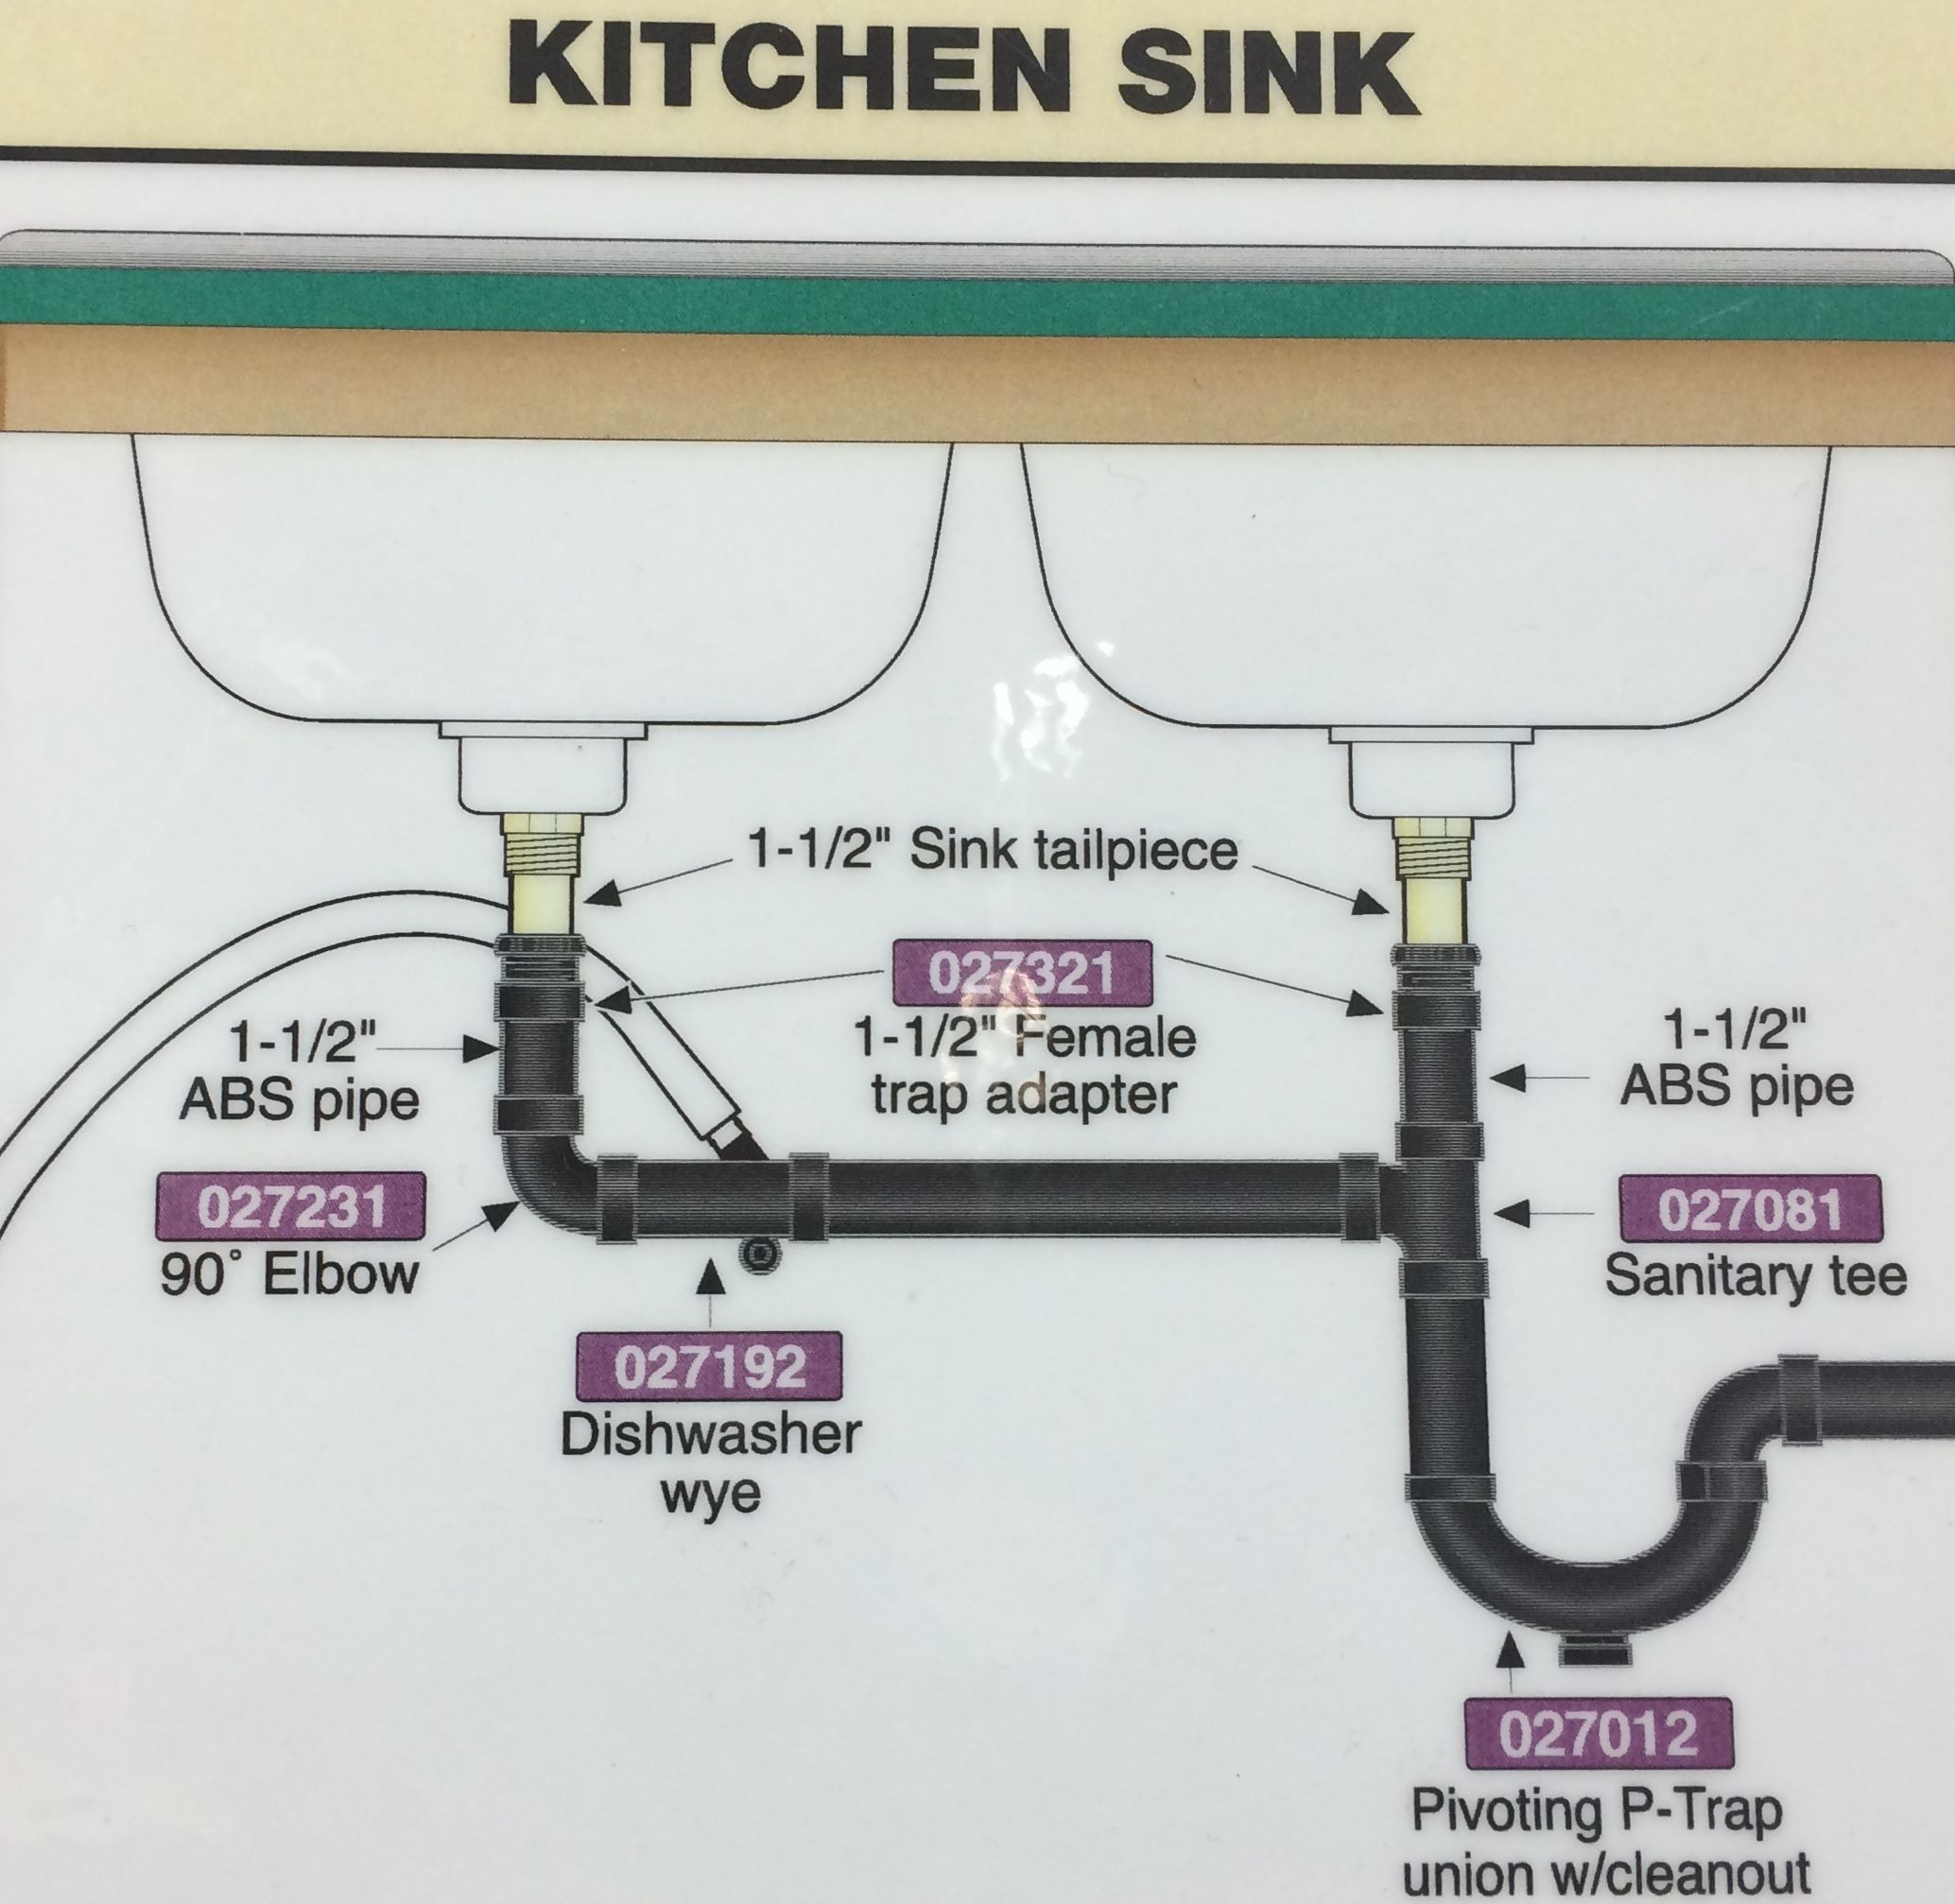 Double Kitchen Sink Plumbing With Dishwasher Double Kitchen Sink Bathroom Sink Plumbing Bathroom Sink Drain